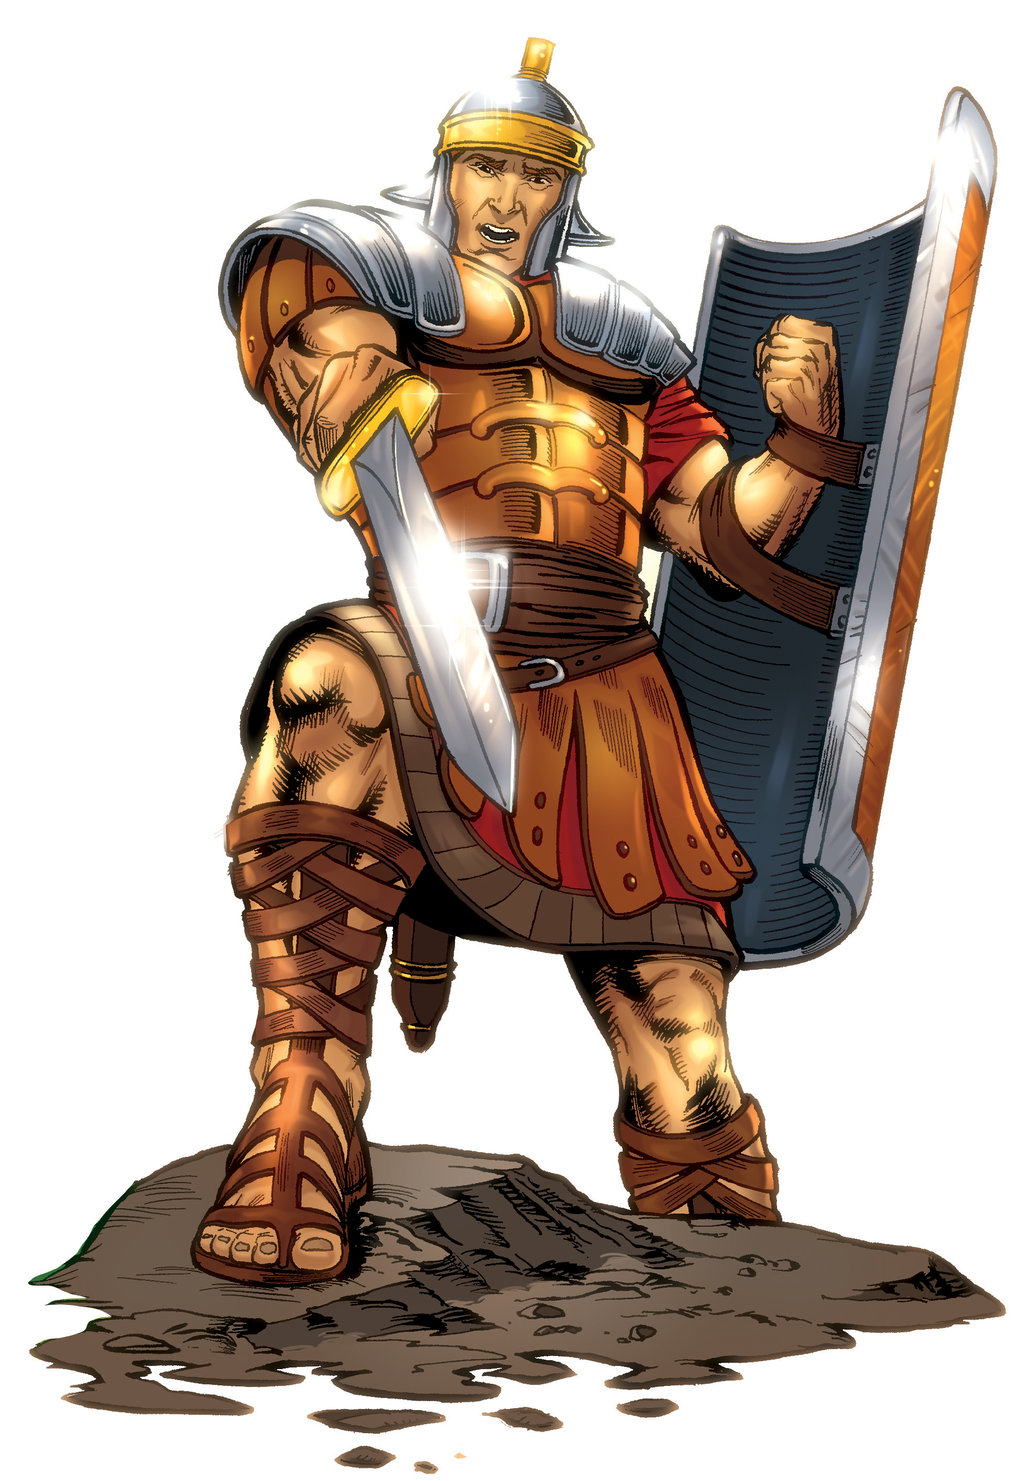 Hd Icon Roman Soldier image #14638